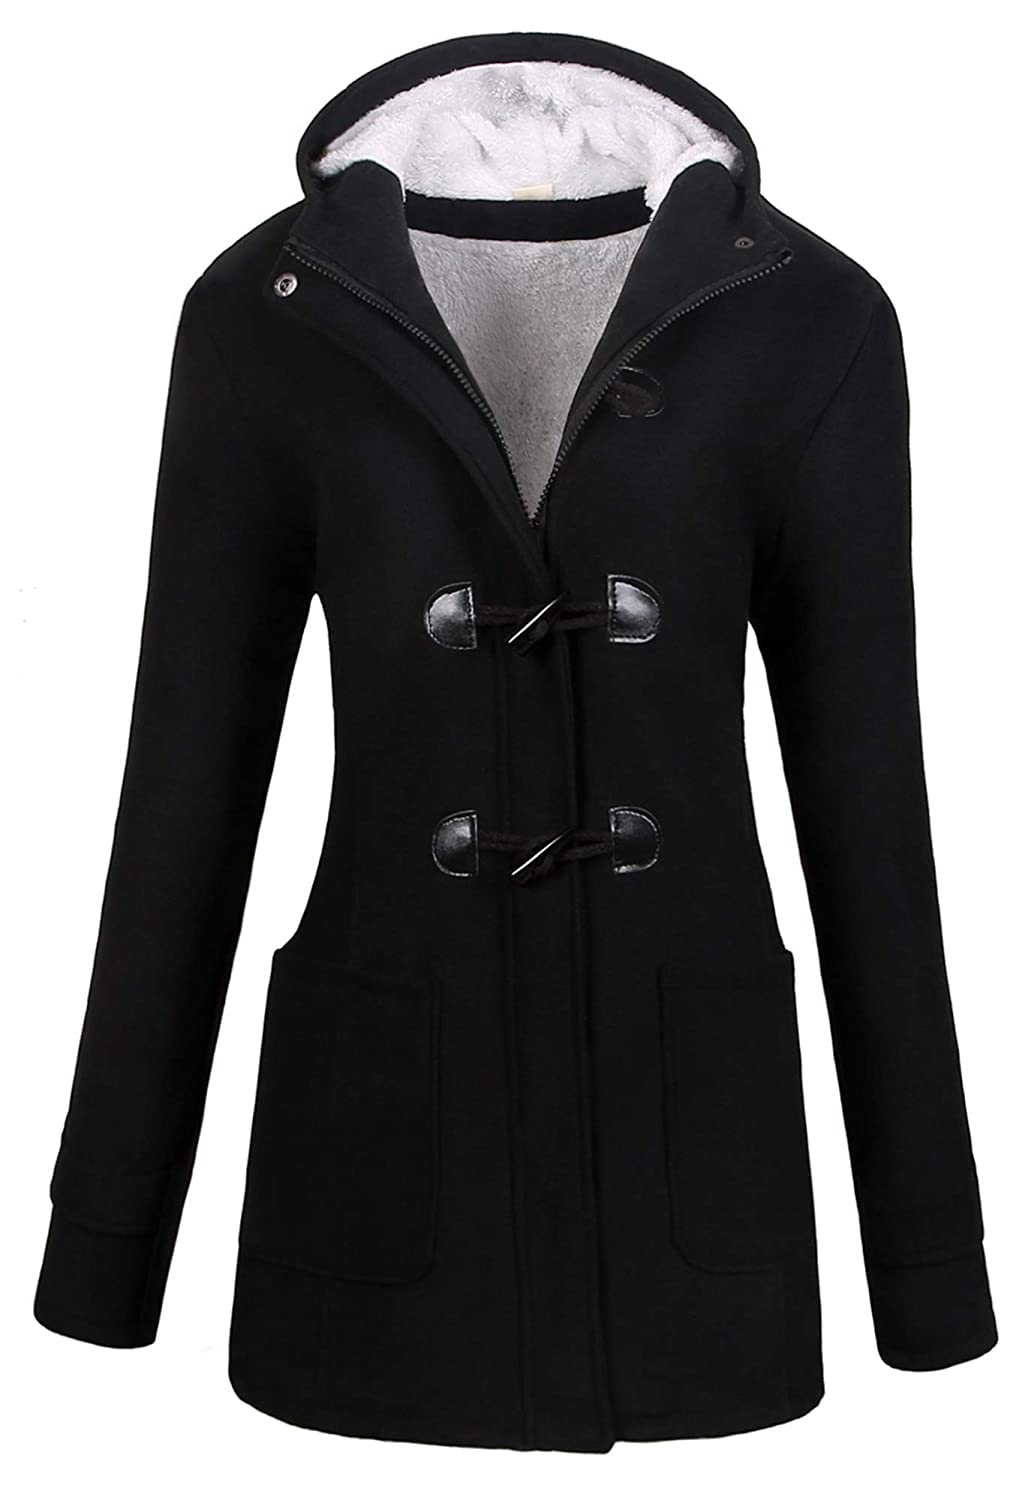 f5cb98cc8d7 Amazon.com  VOGRYE Womens Winter Fashion Outdoor Warm Wool Blended Classic Pea  Coat Jacket (FBA)  Clothing